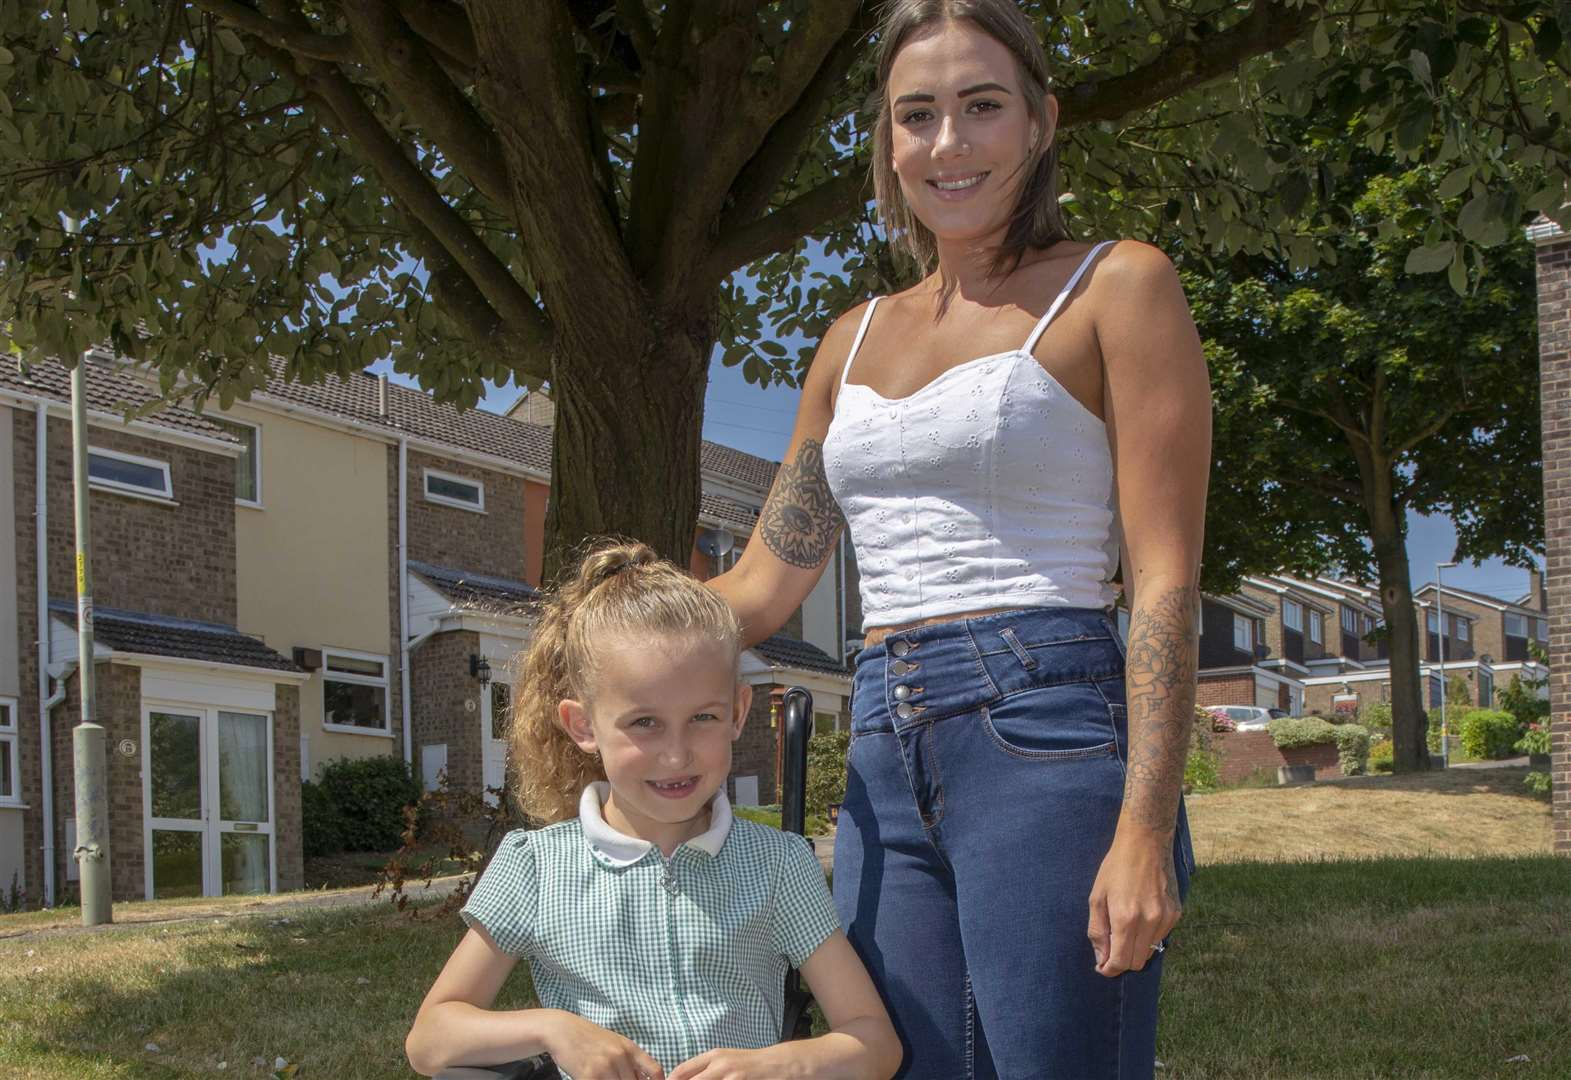 Schoolgirl needs to raise £25,000 for life-changing op